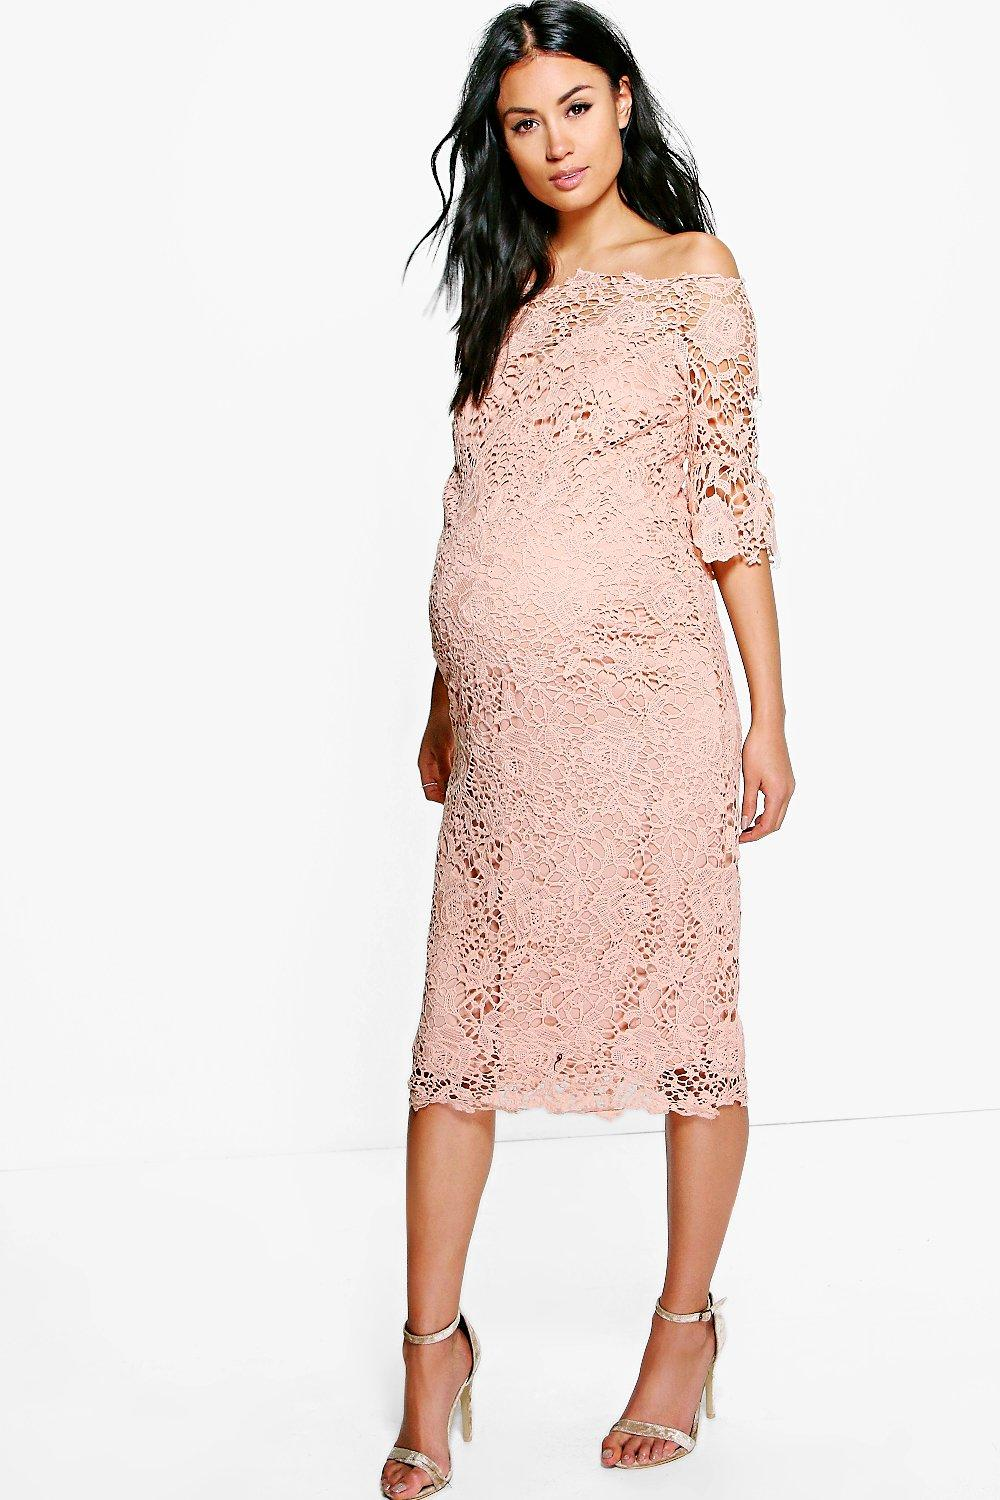 Maternity phoebe boutique off the shoulder crochet dress boohoo maternity phoebe boutique off the shoulder crochet dress hover to zoom ombrellifo Image collections